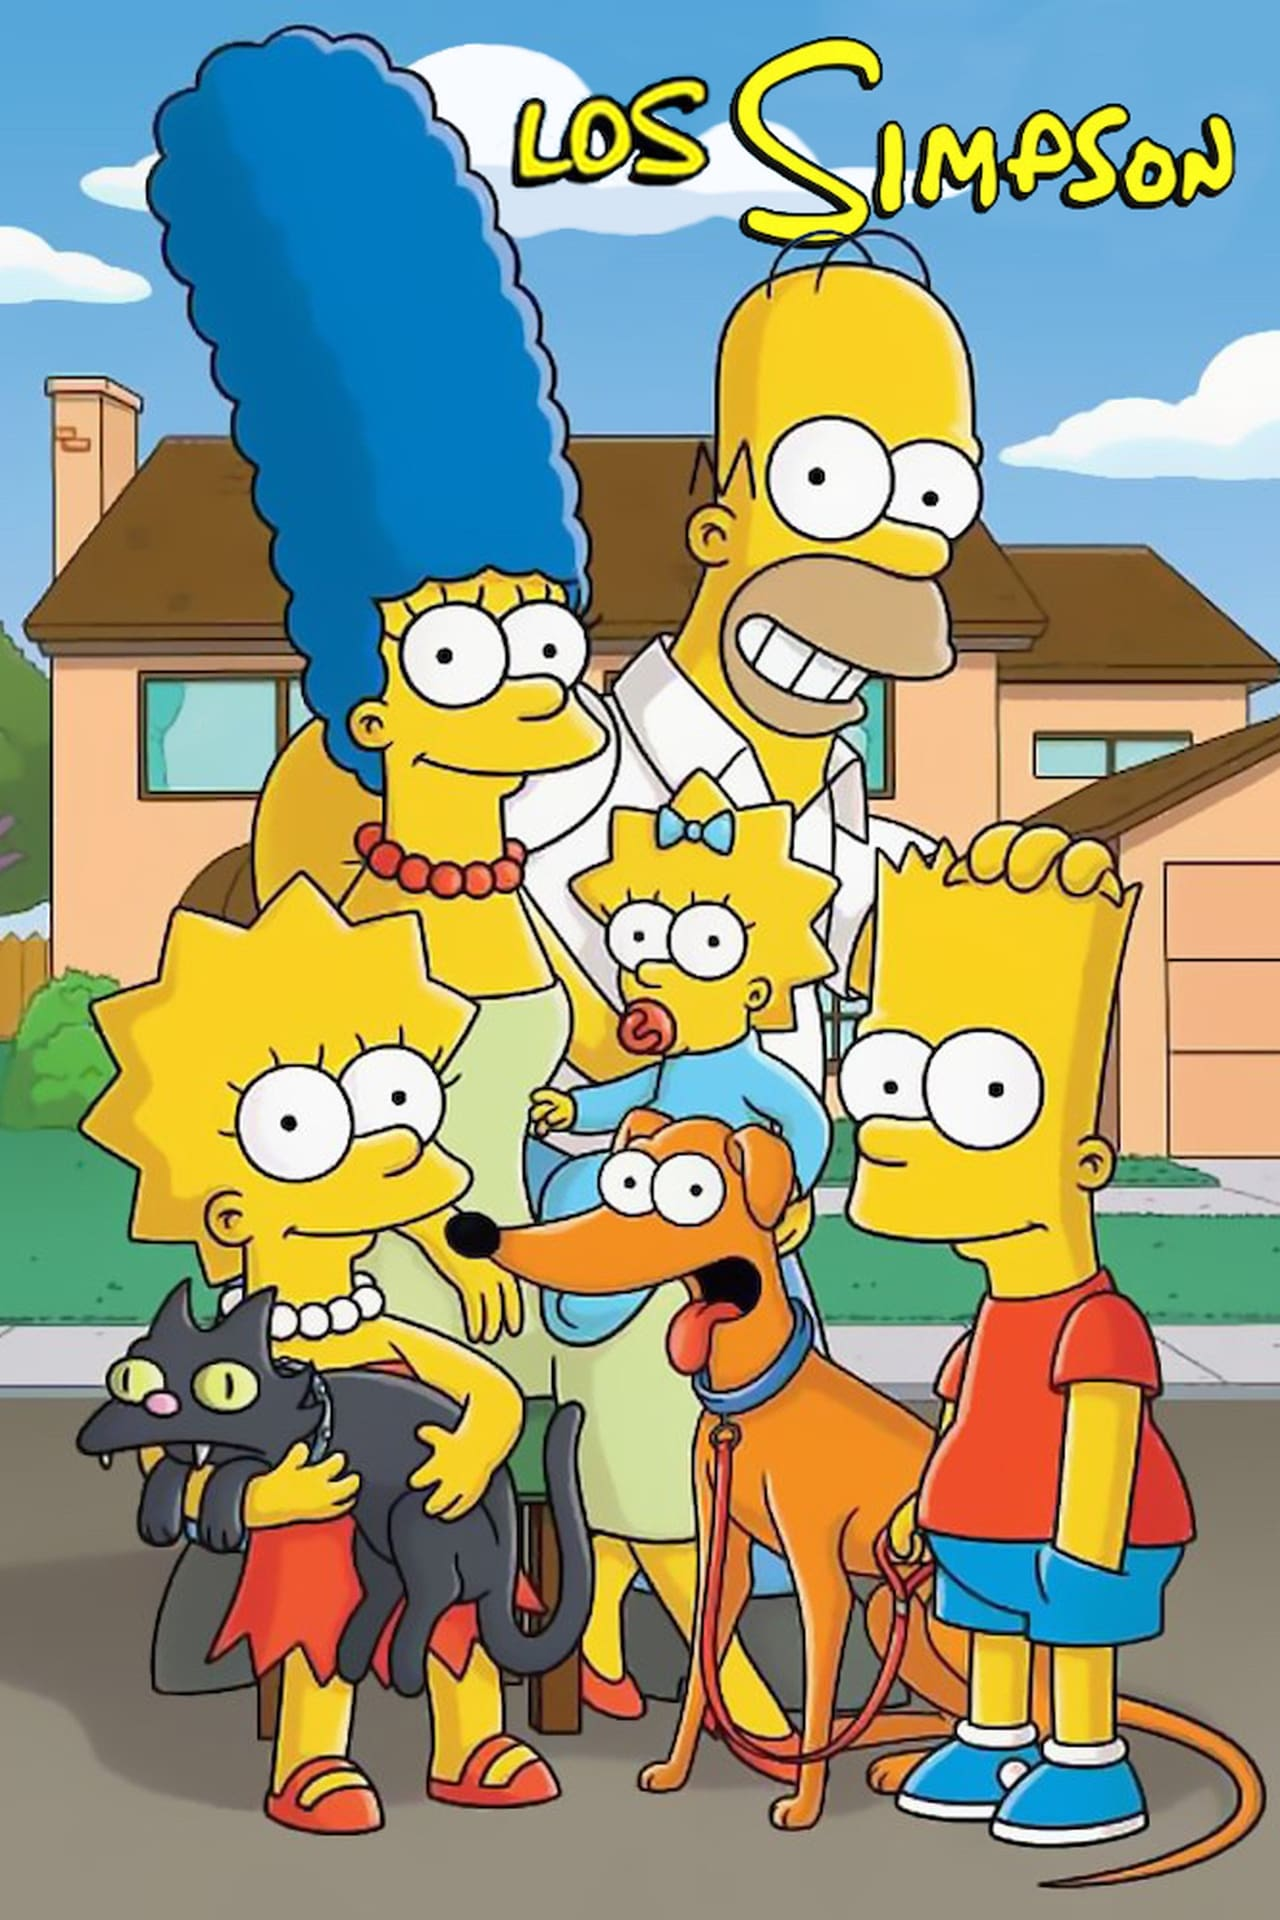 Los Simpson - Season 2 Episode 1 : Bart en suspenso